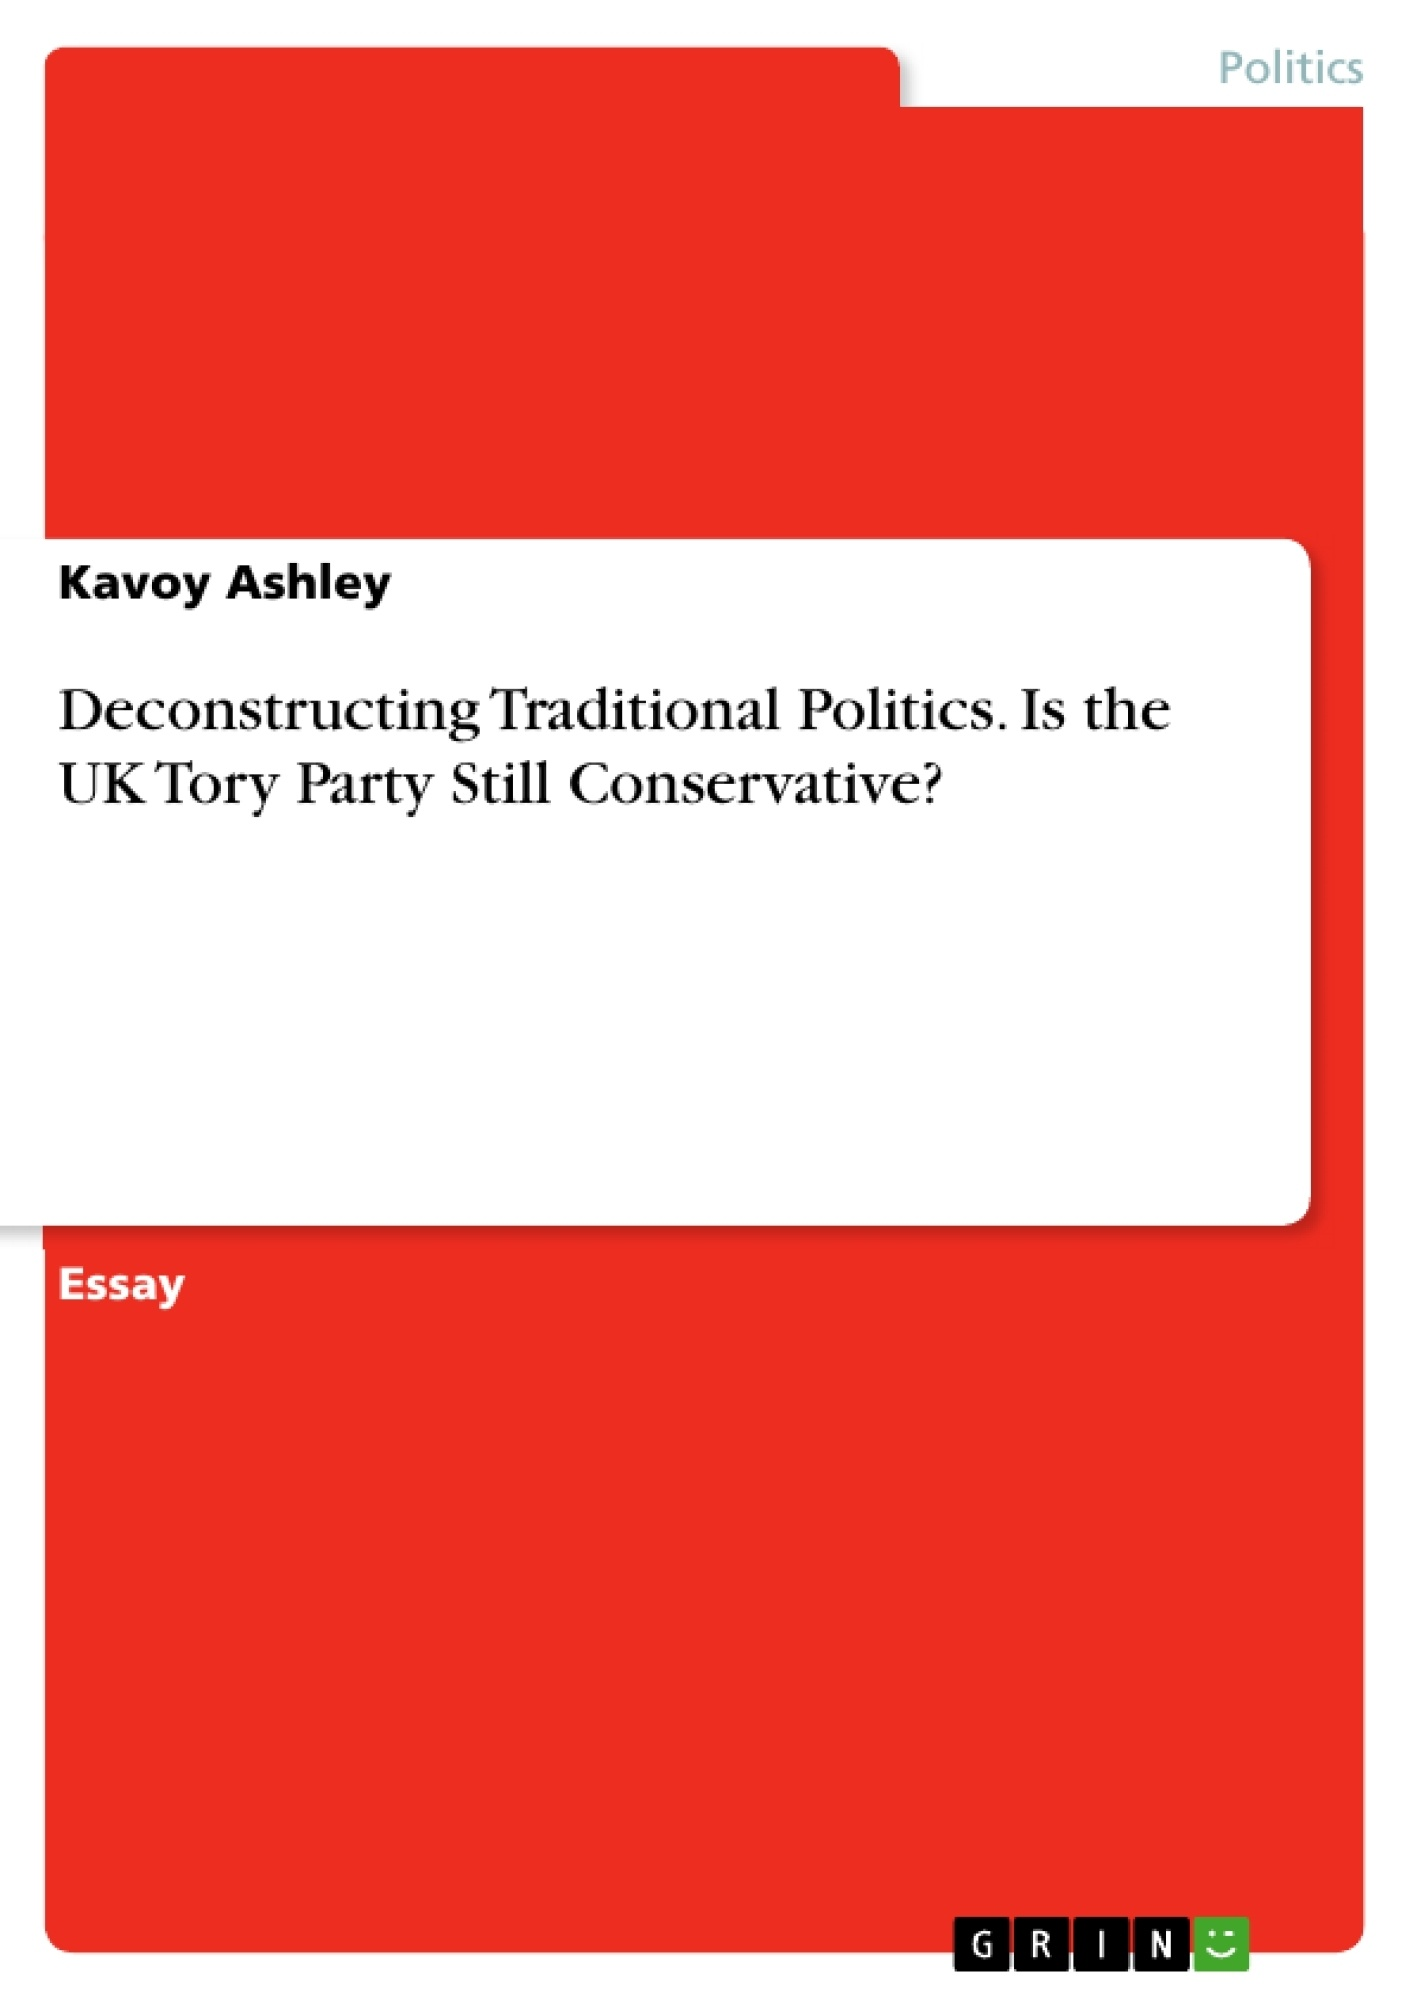 Title: Deconstructing Traditional Politics. Is the UK Tory Party Still Conservative?